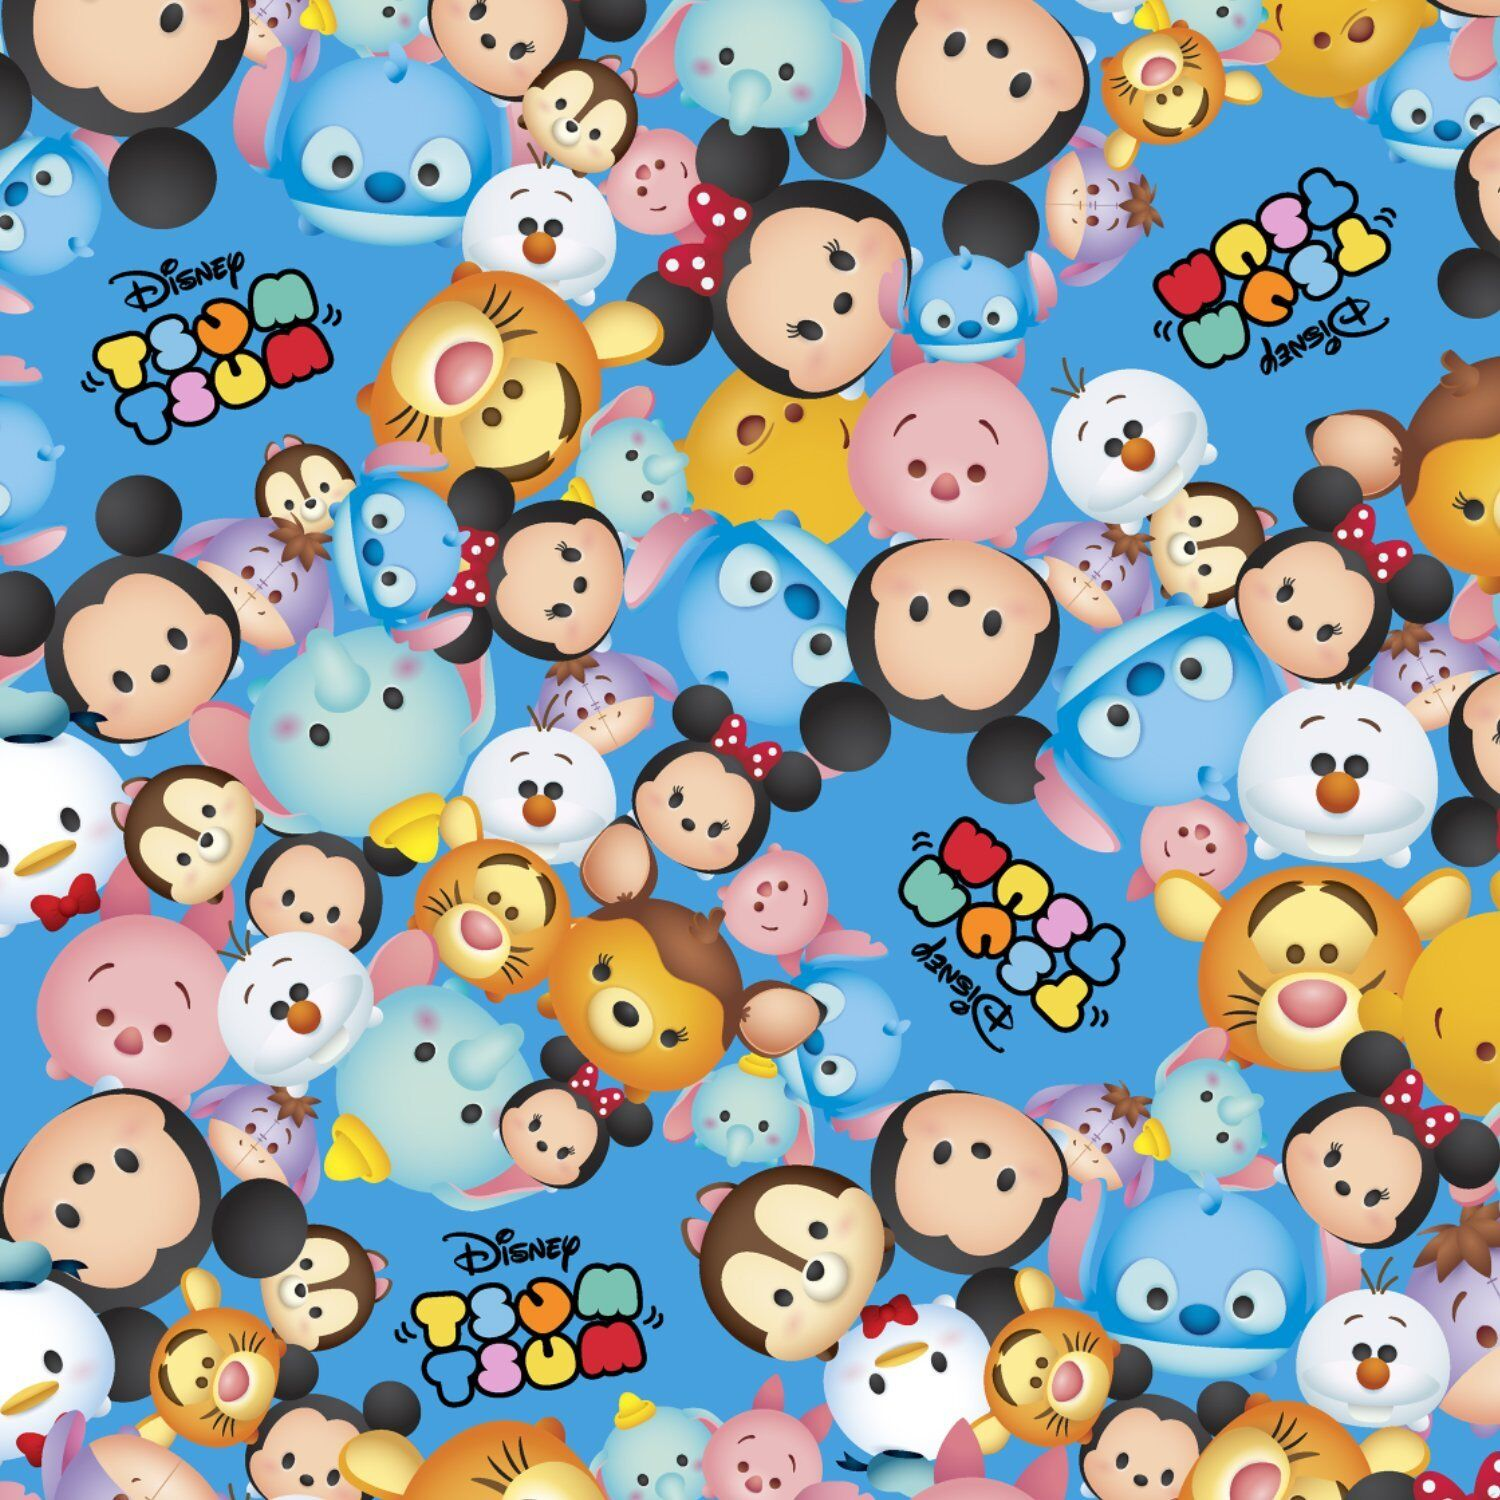 100 Pictures Cartoon Characters disney tsum tsum packed characters logo blue 100% cotton fabricthe yard